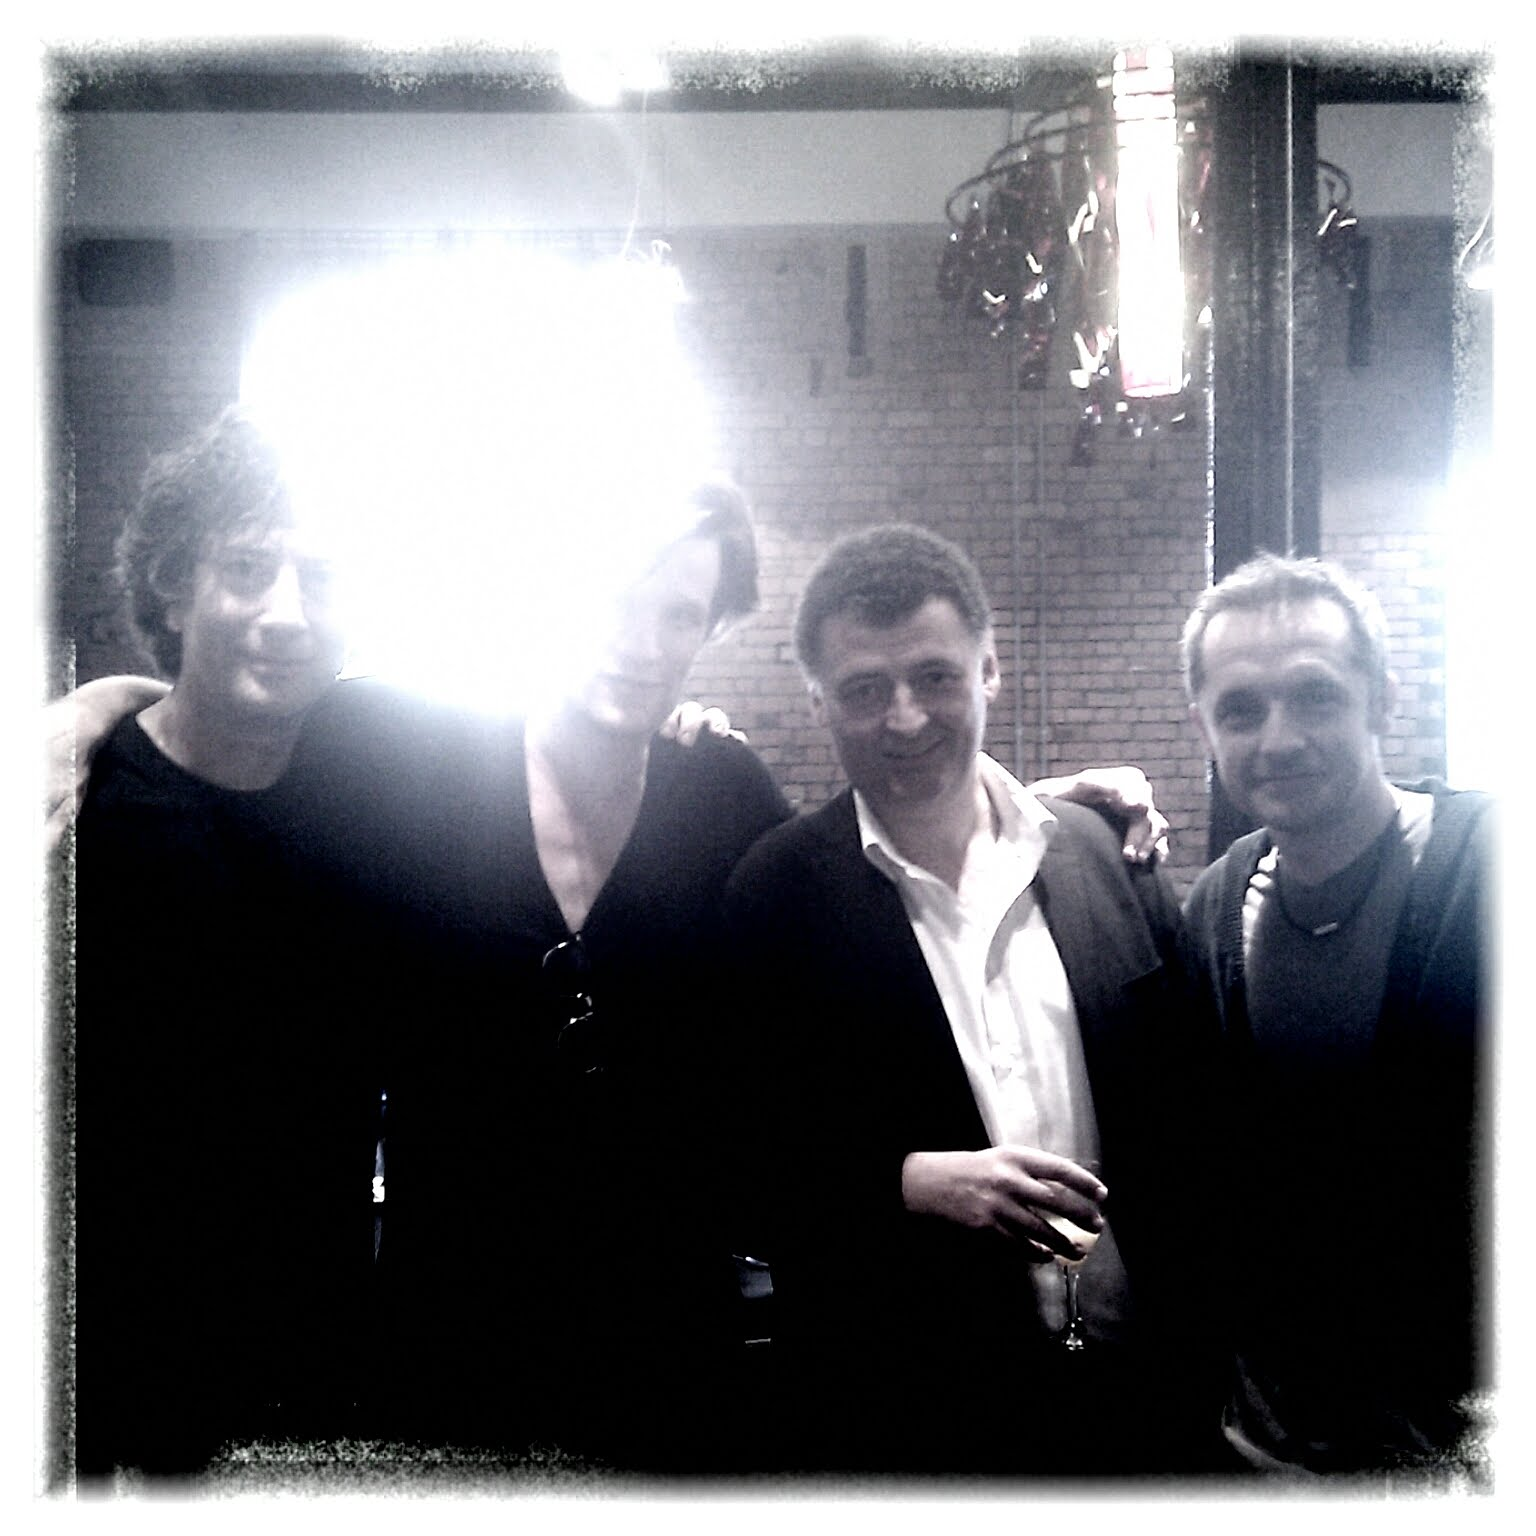 gaiman, smith, moffat, clark